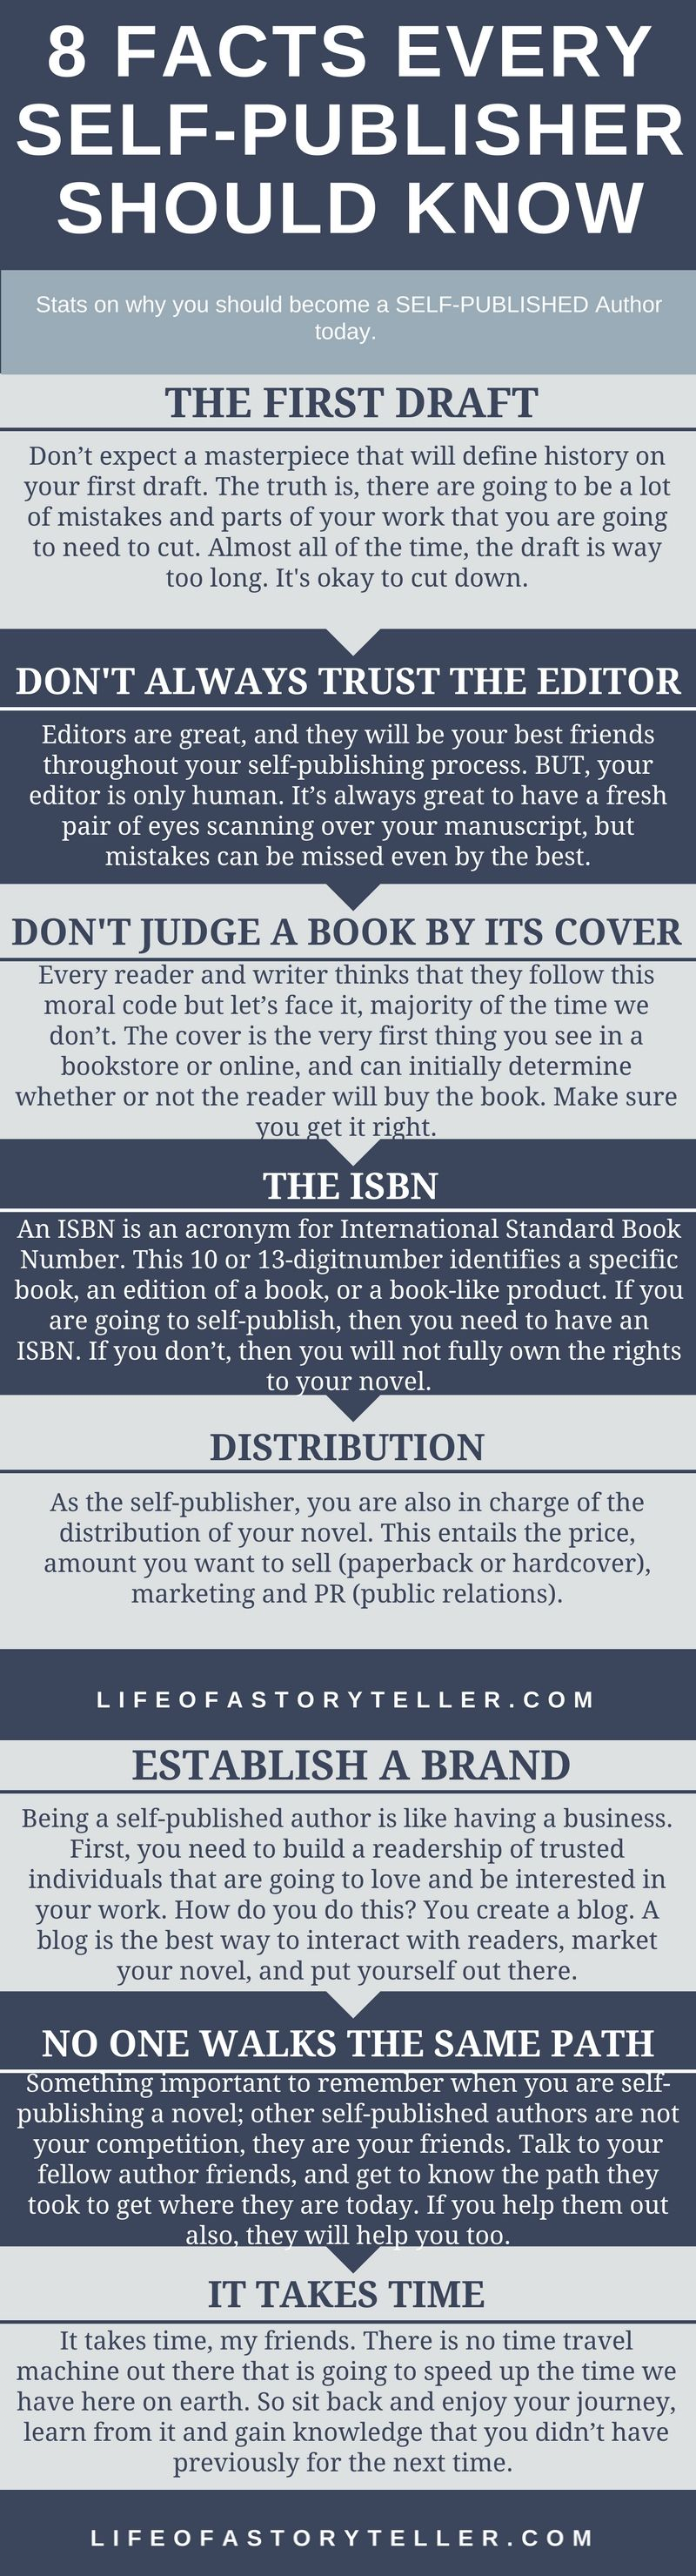 8 FACTS EVERY SELF PUBLISHER SHOULD KNOW